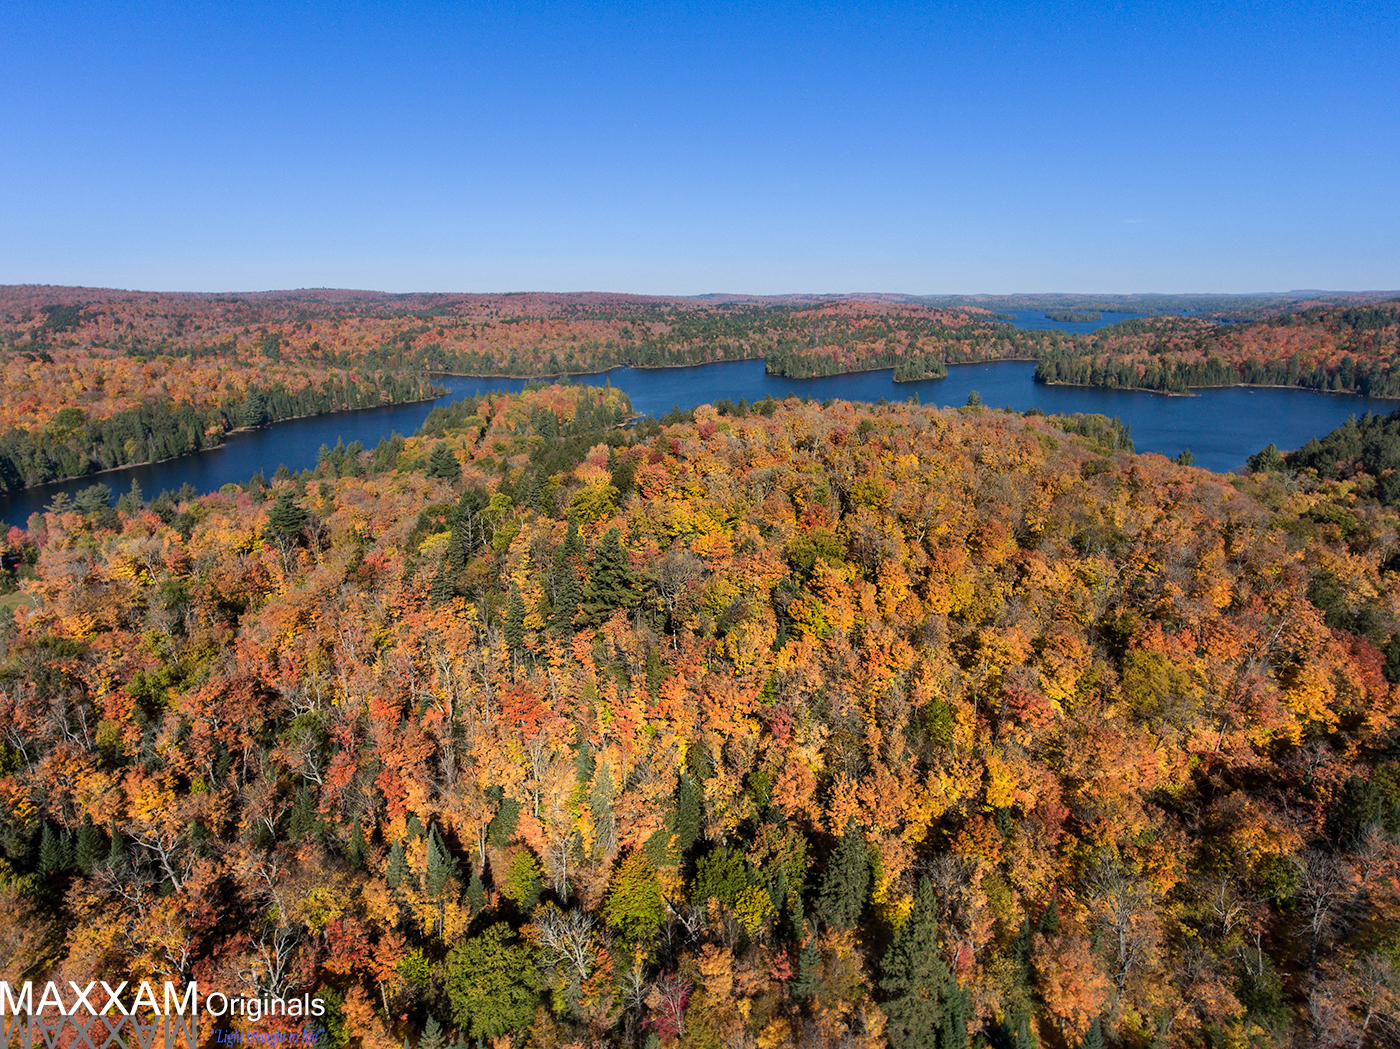 Algonquin Provincial Park from high above the trees in the autumn.